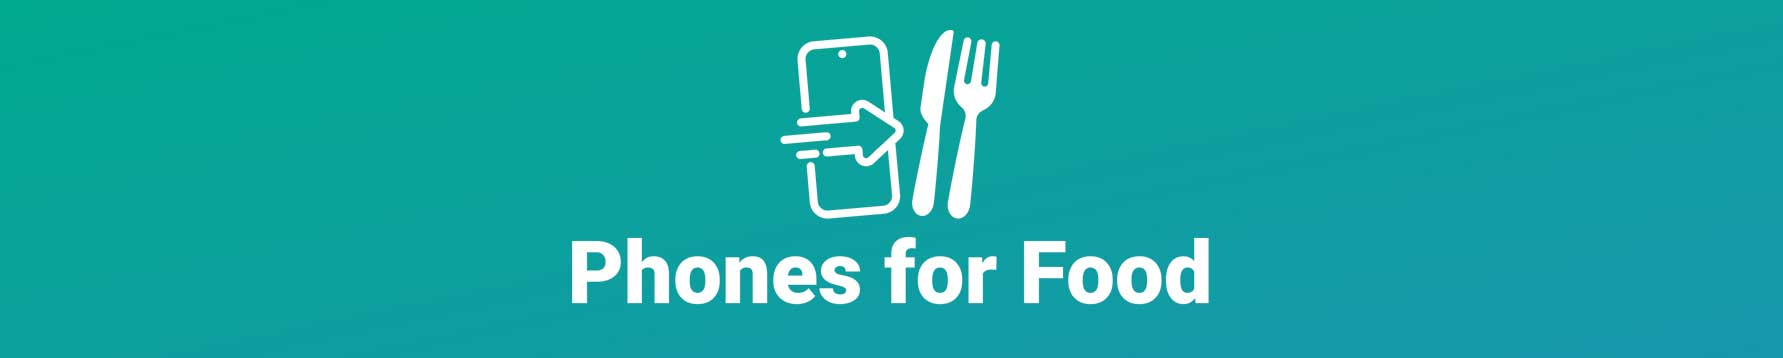 Phones for Food